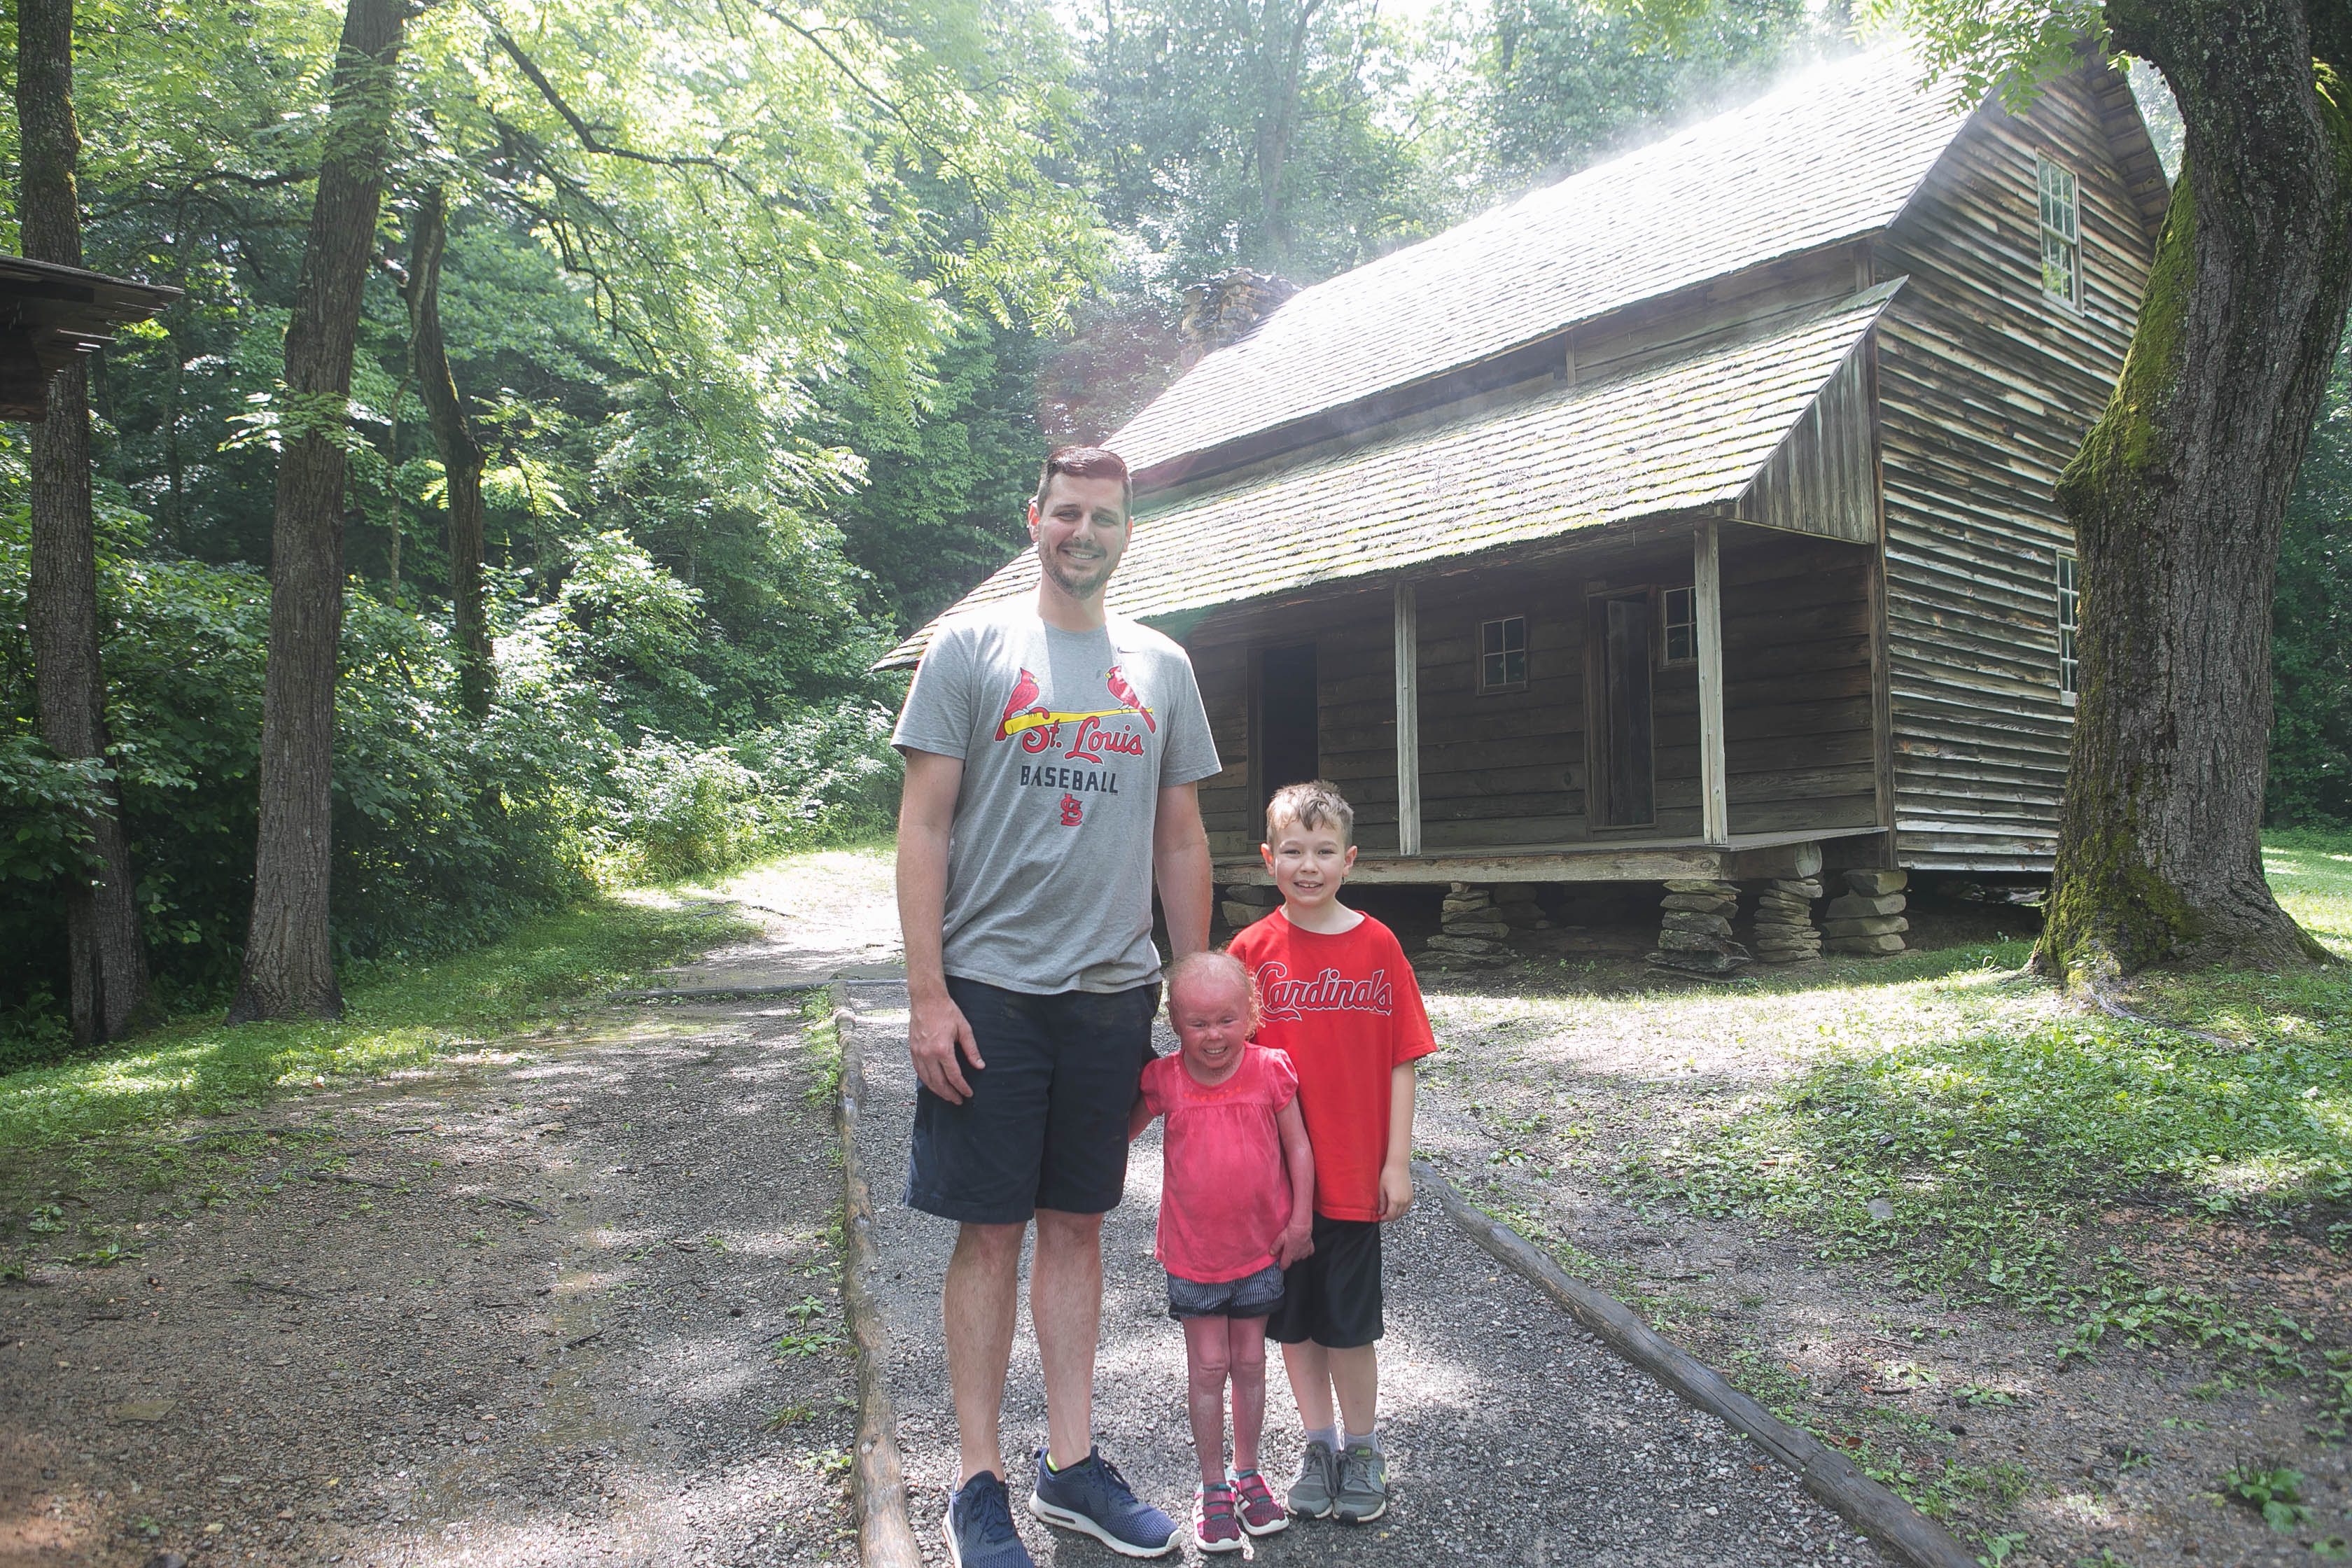 Visiting historic Cade's cove in the Smoky Mountains